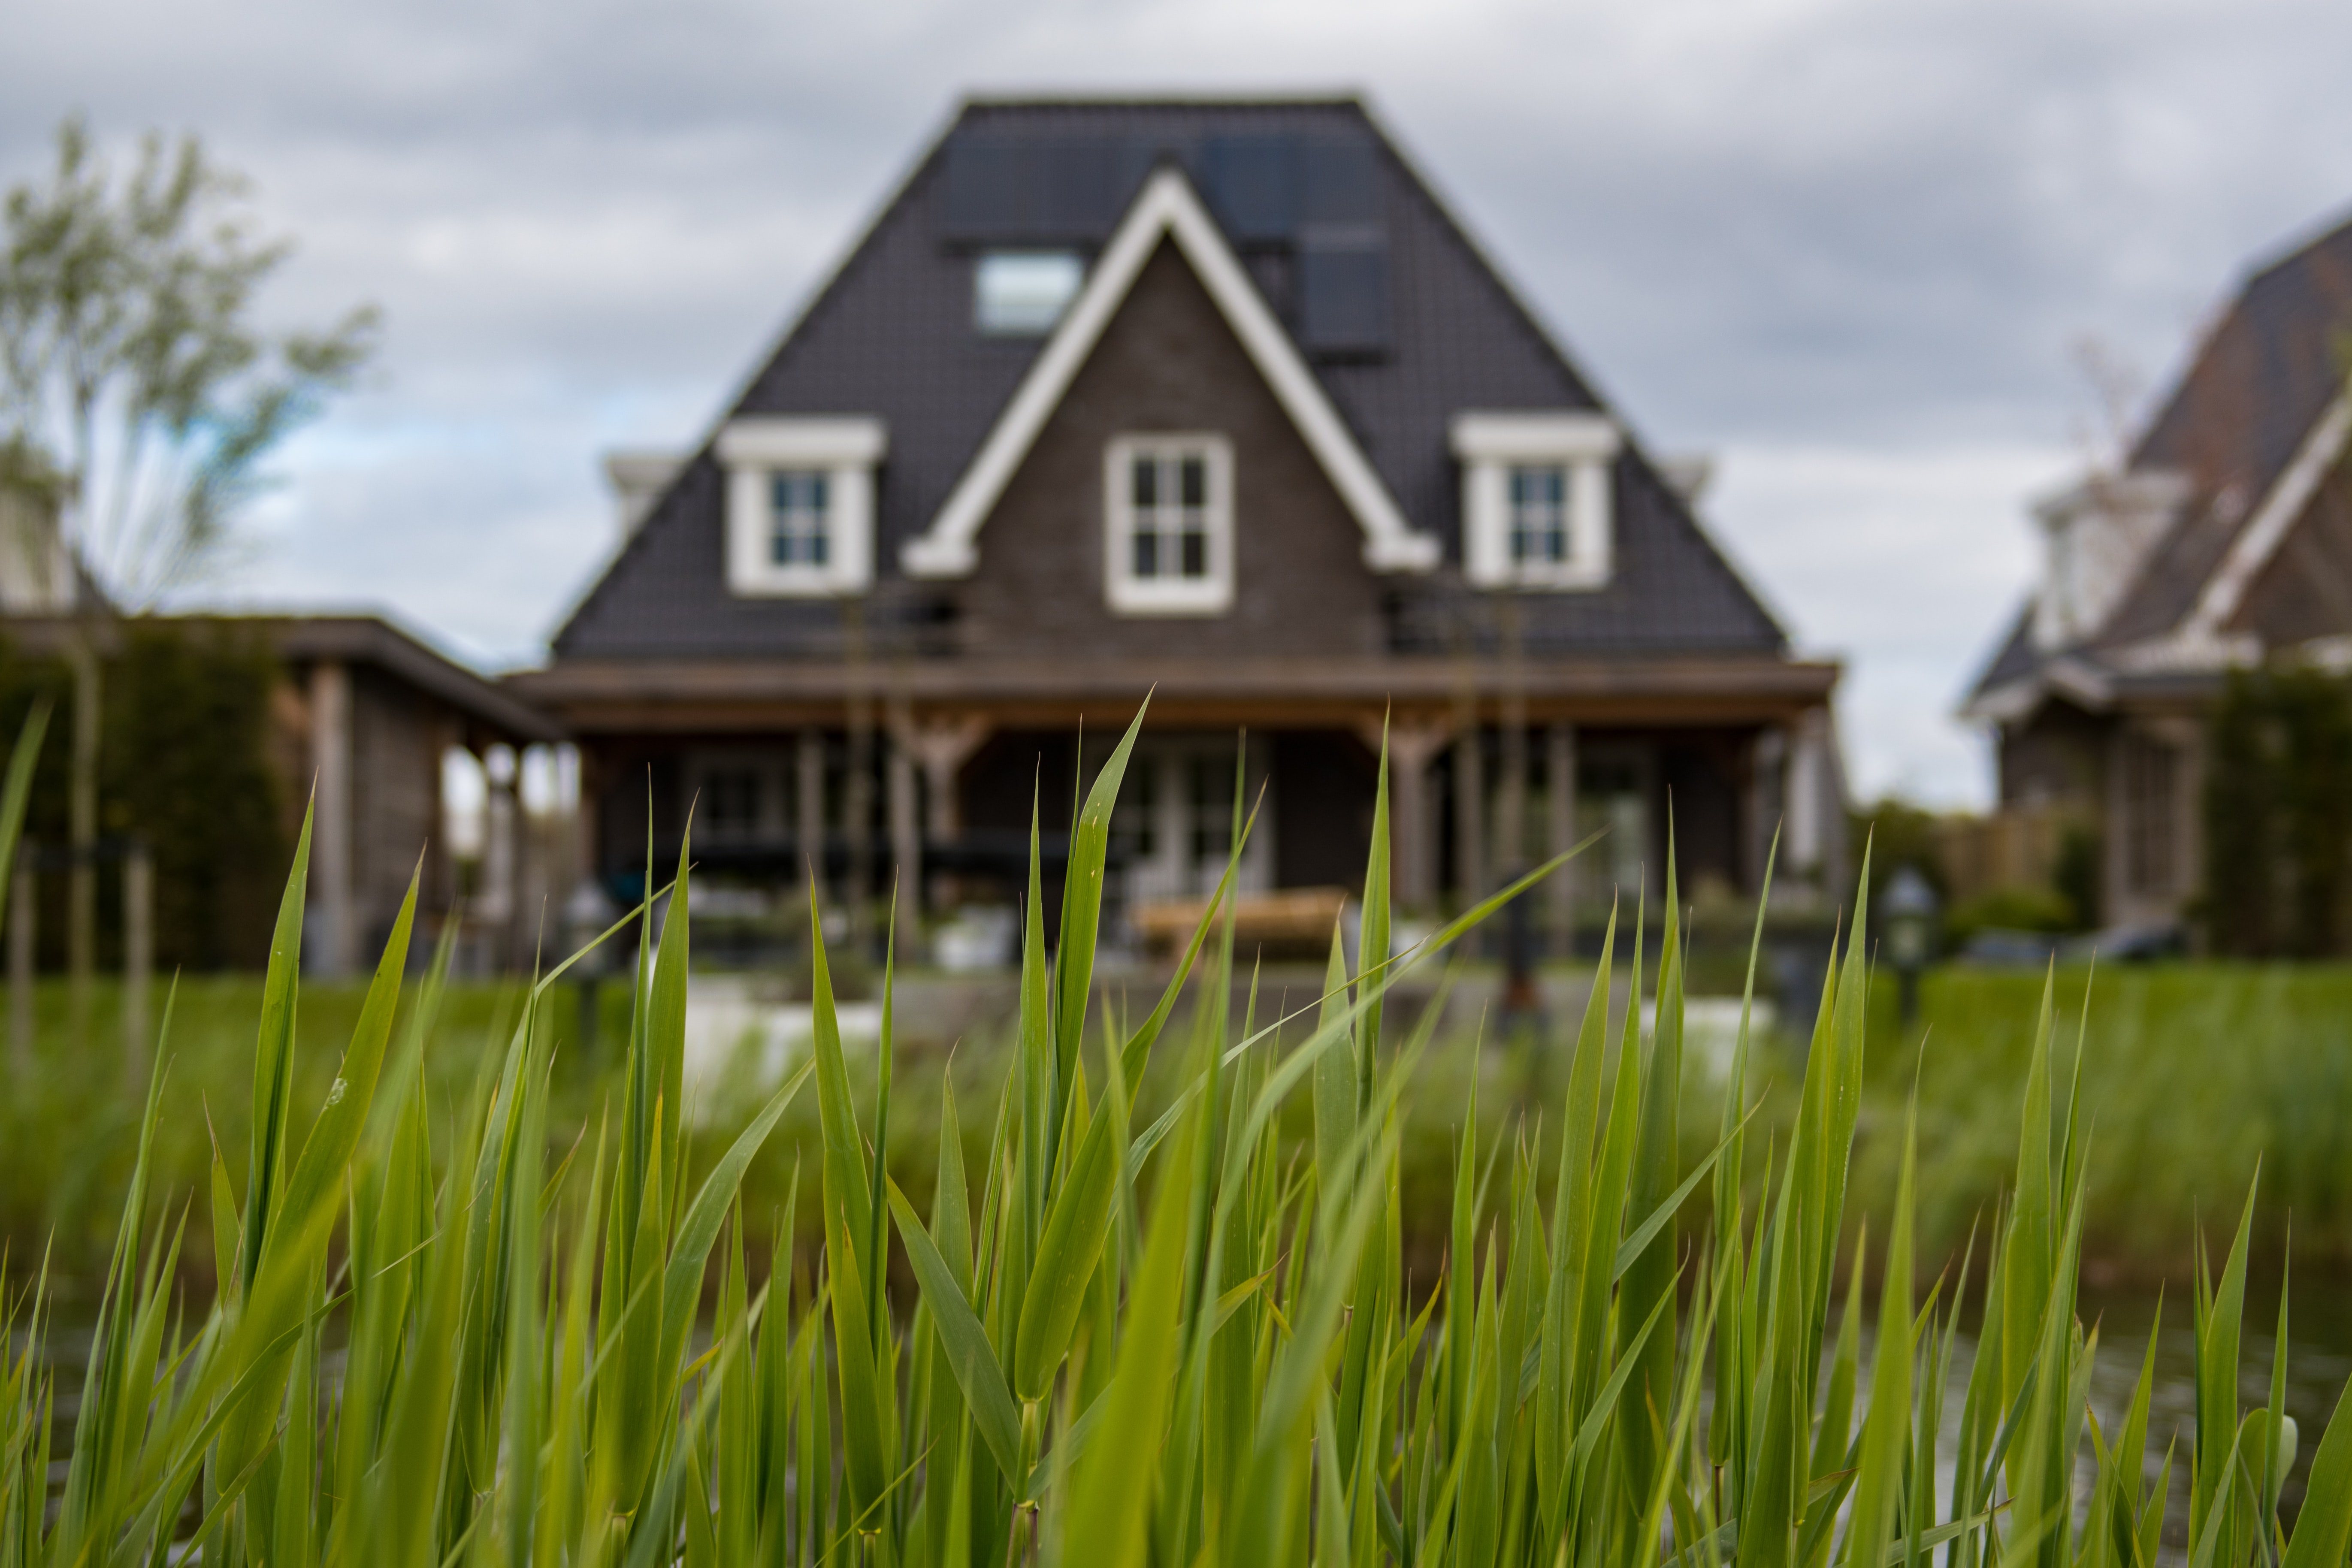 A close up of grass. A house looms behind.